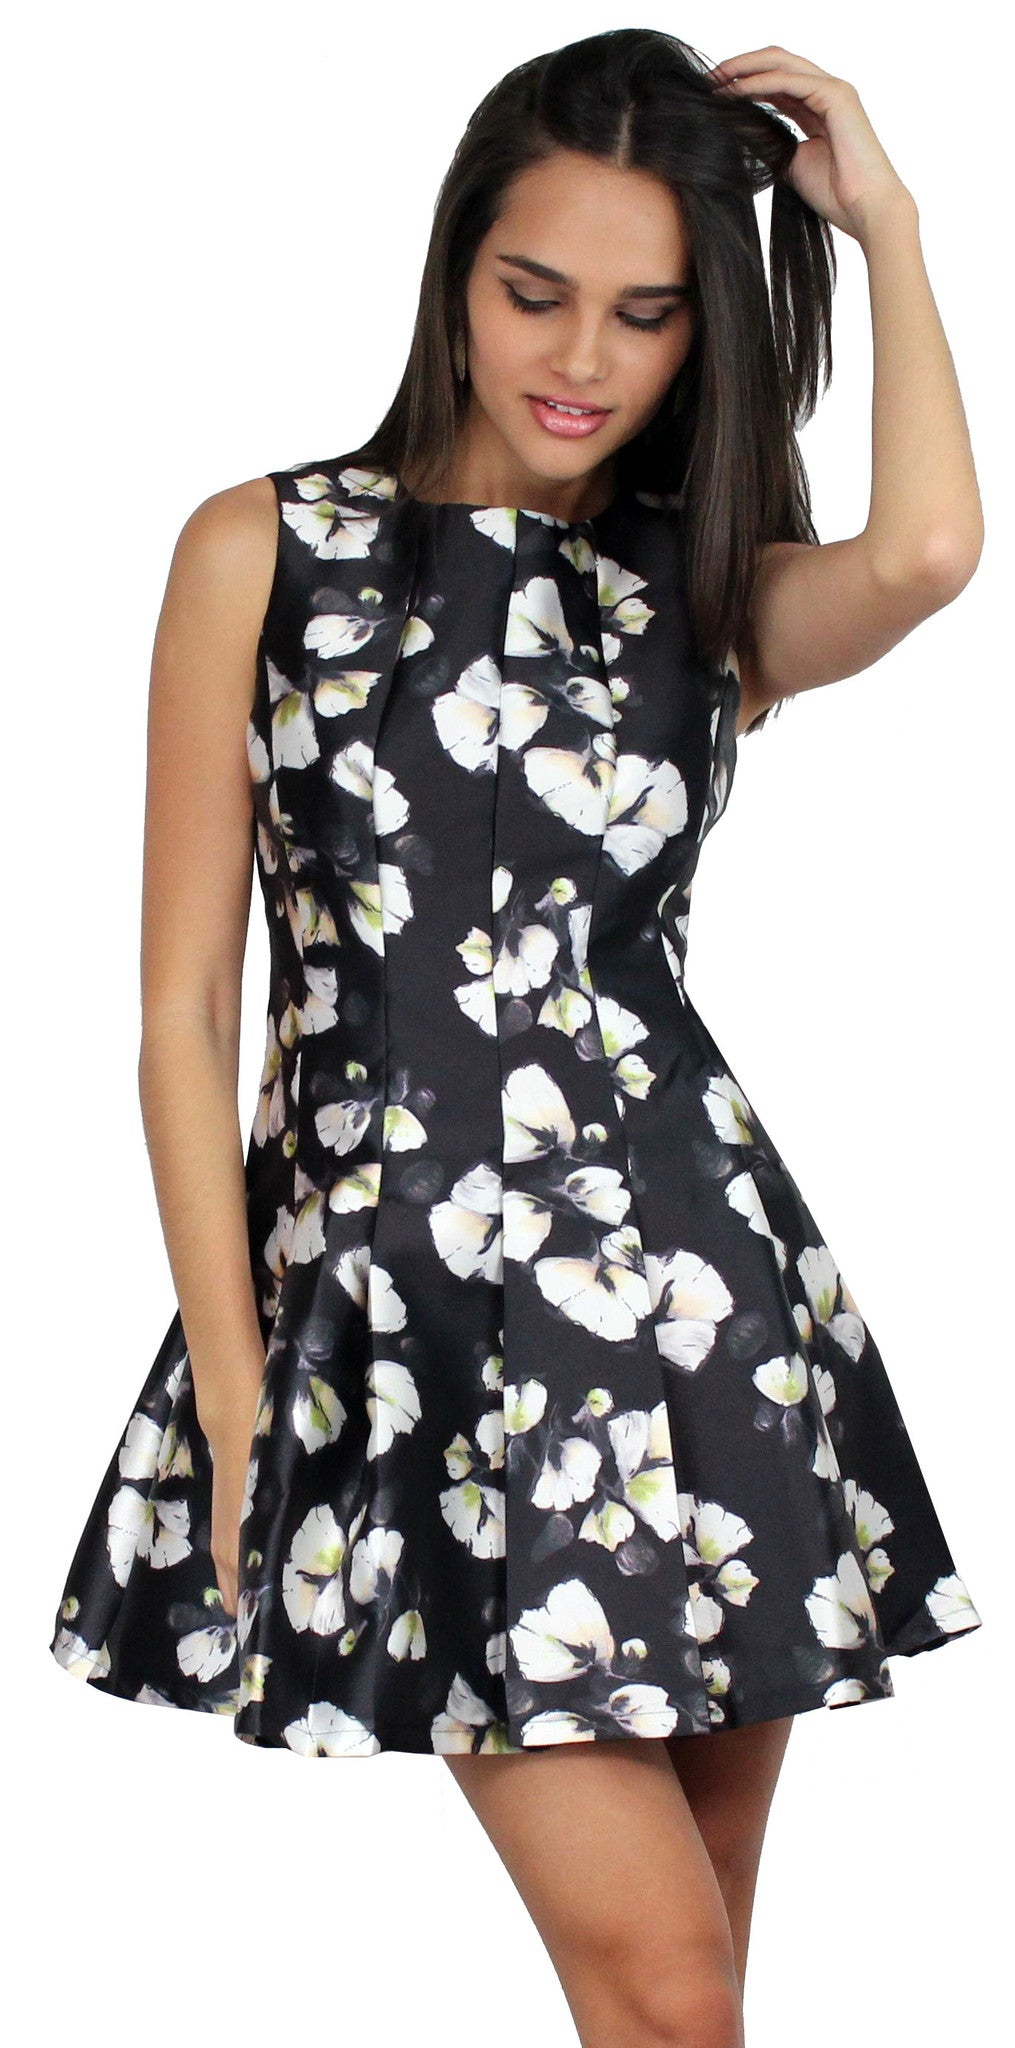 La Brea Black Floral Print Fit & Flare Dress